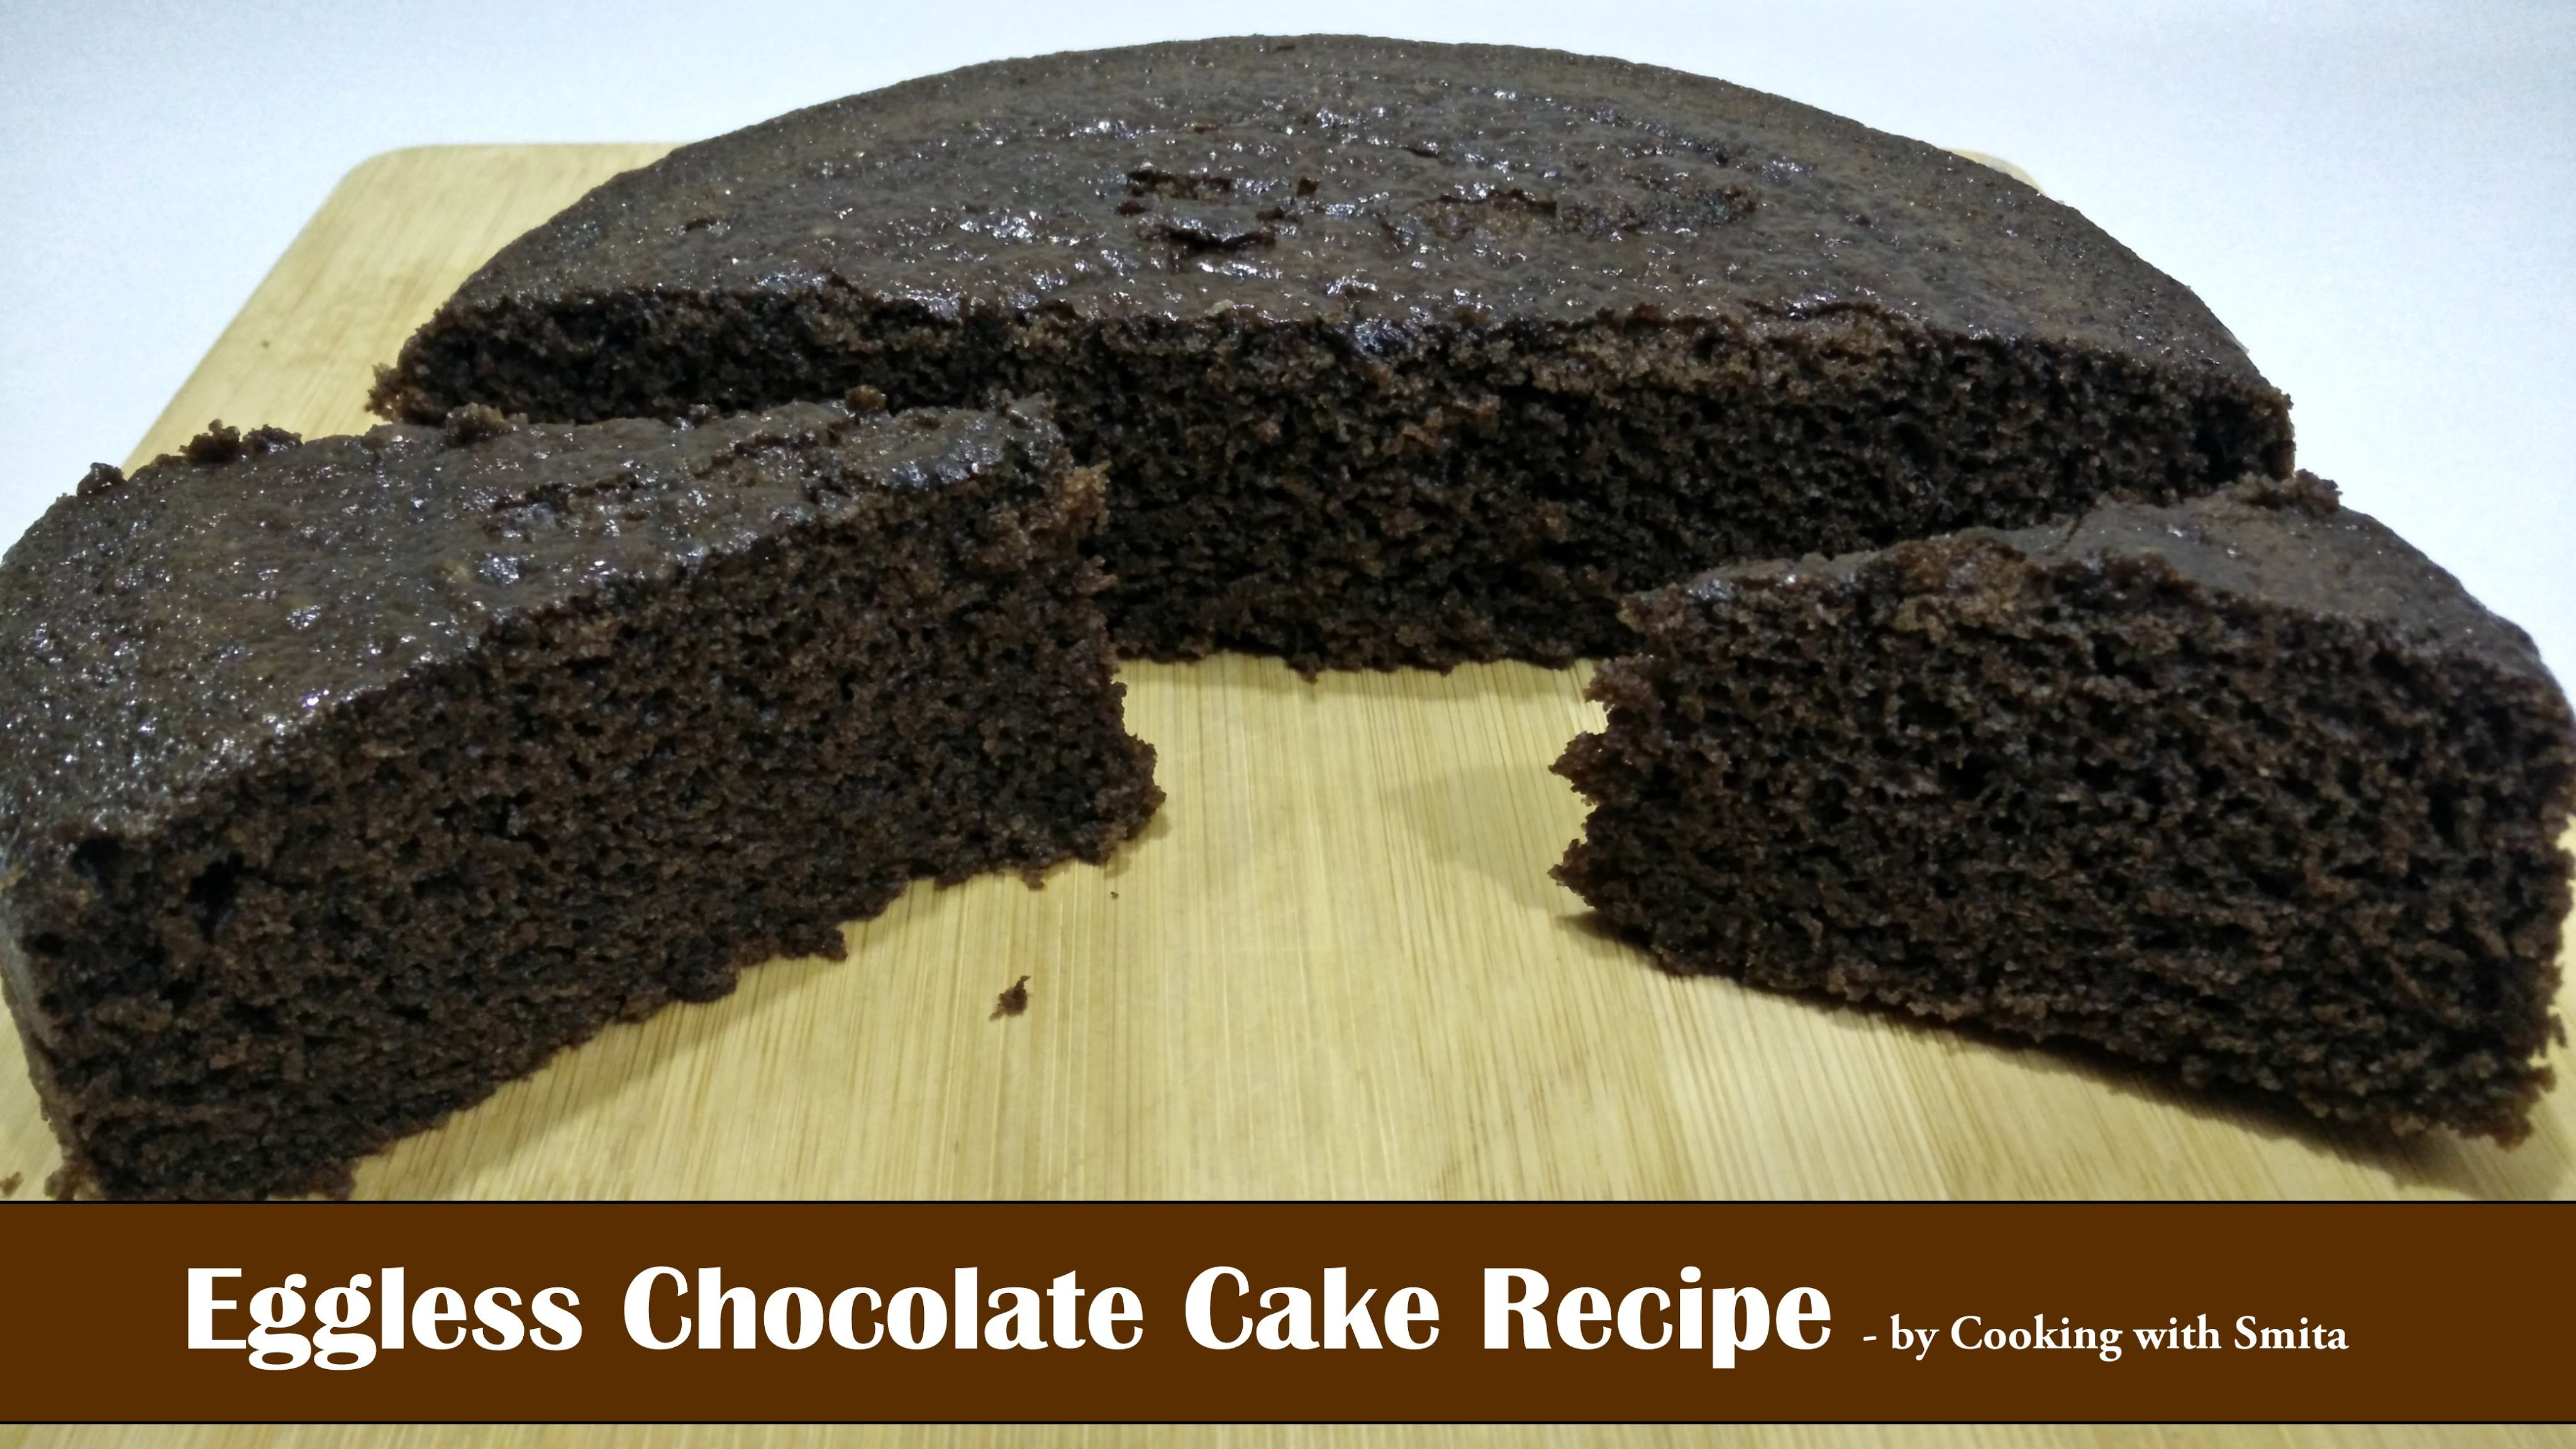 Eggless Chocolate Cake Recipe In Hindi By Cooking With Smita This